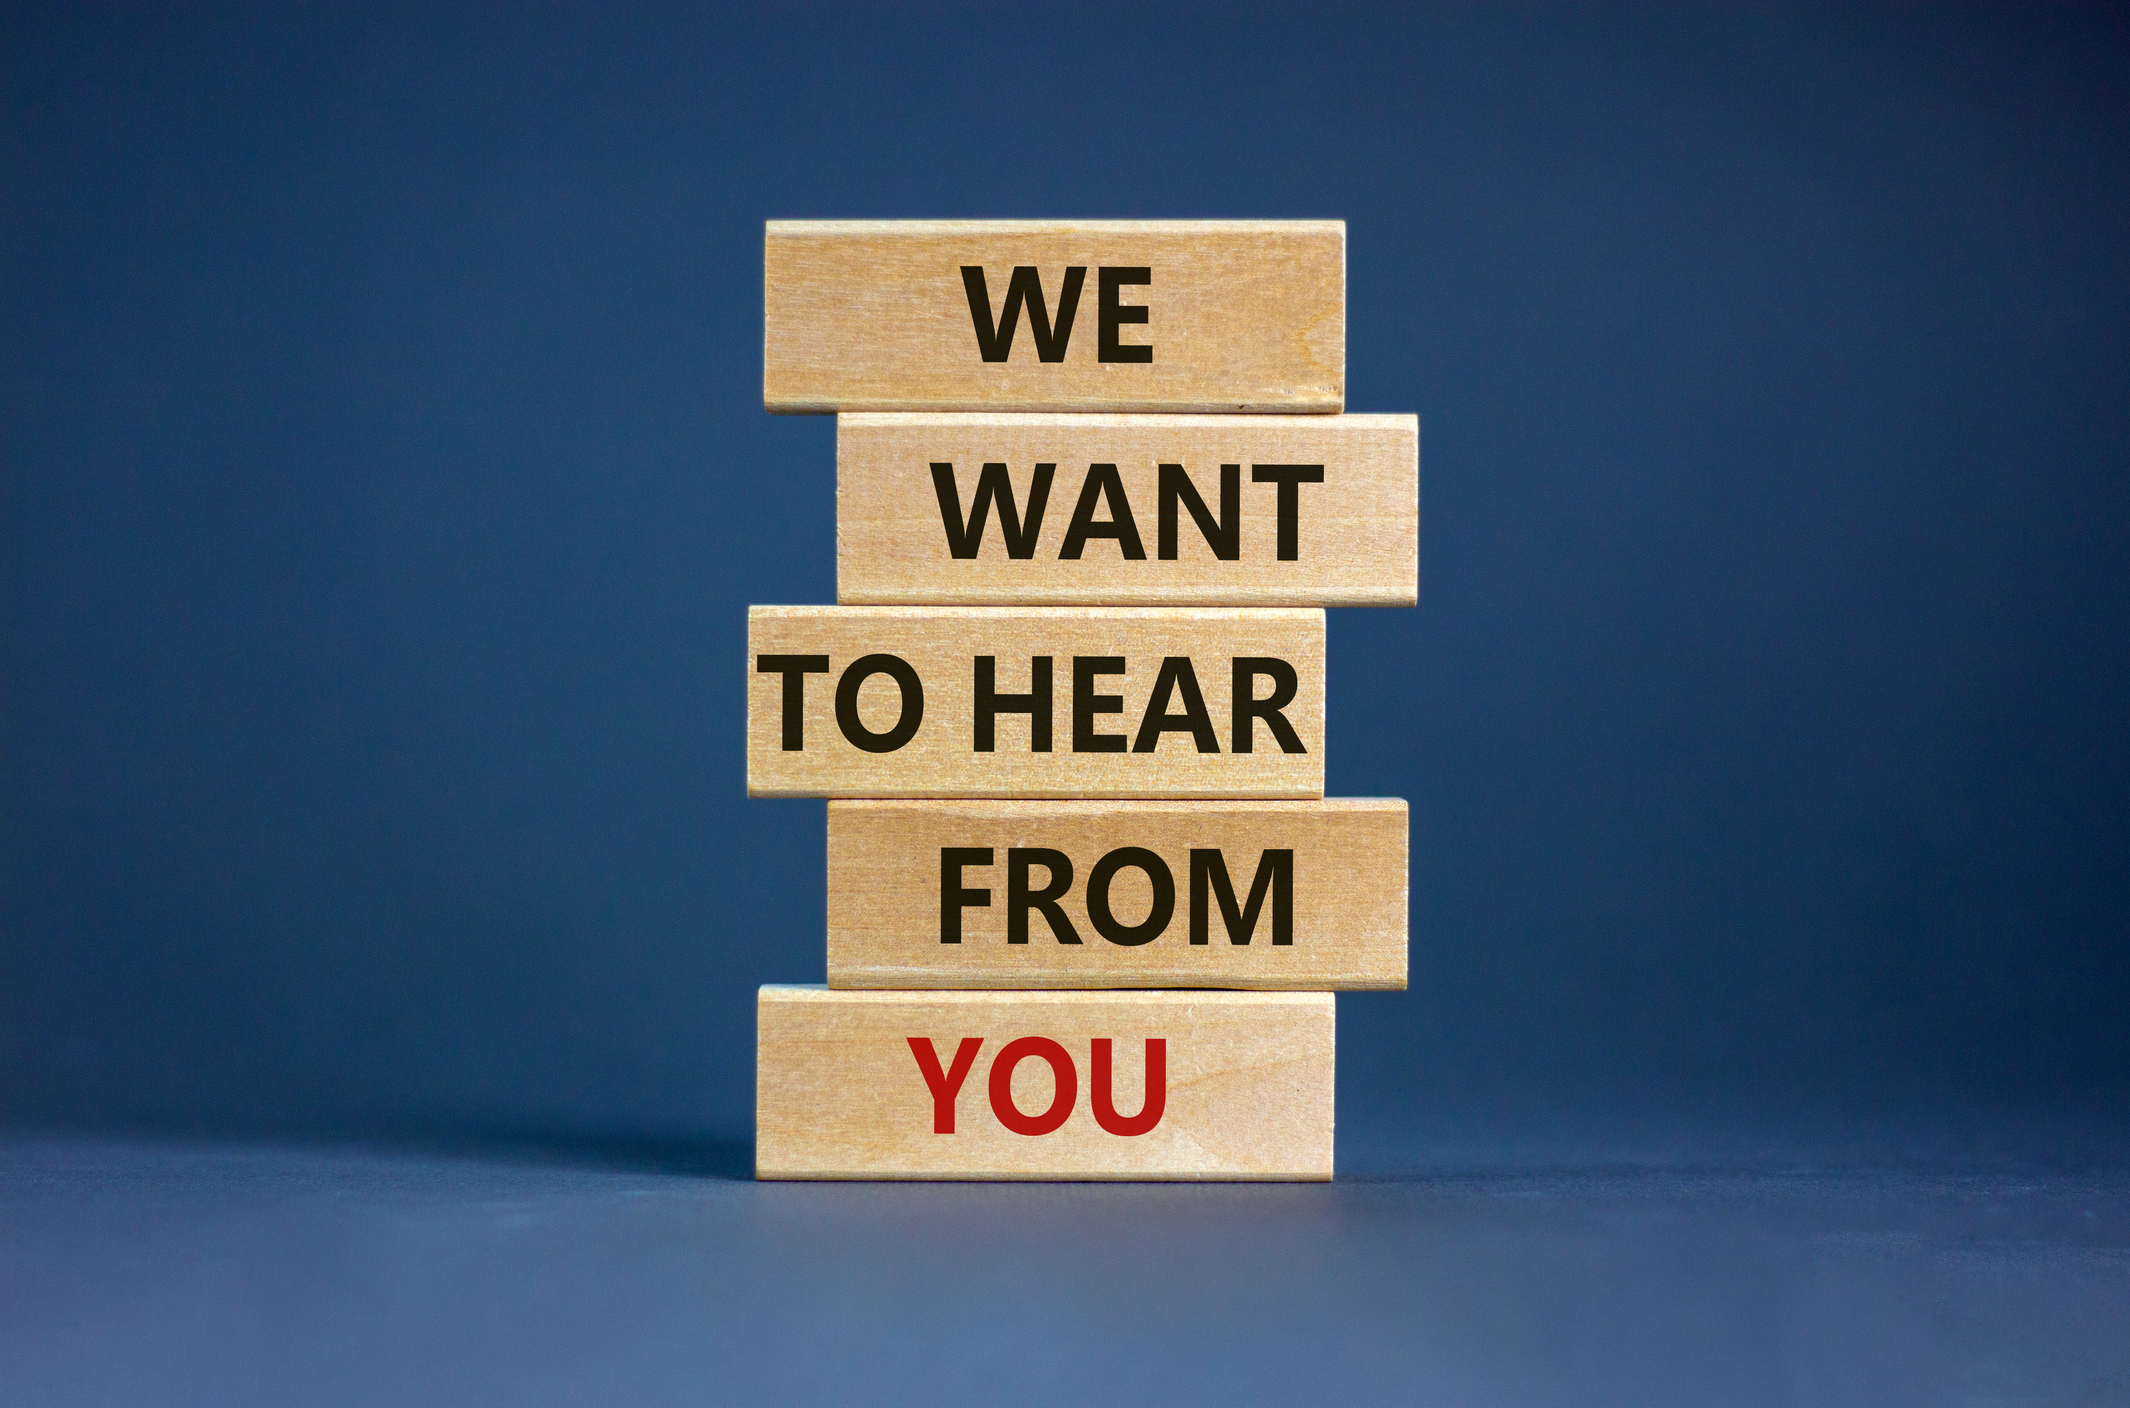 We_want_to_hear_from_you [istock]